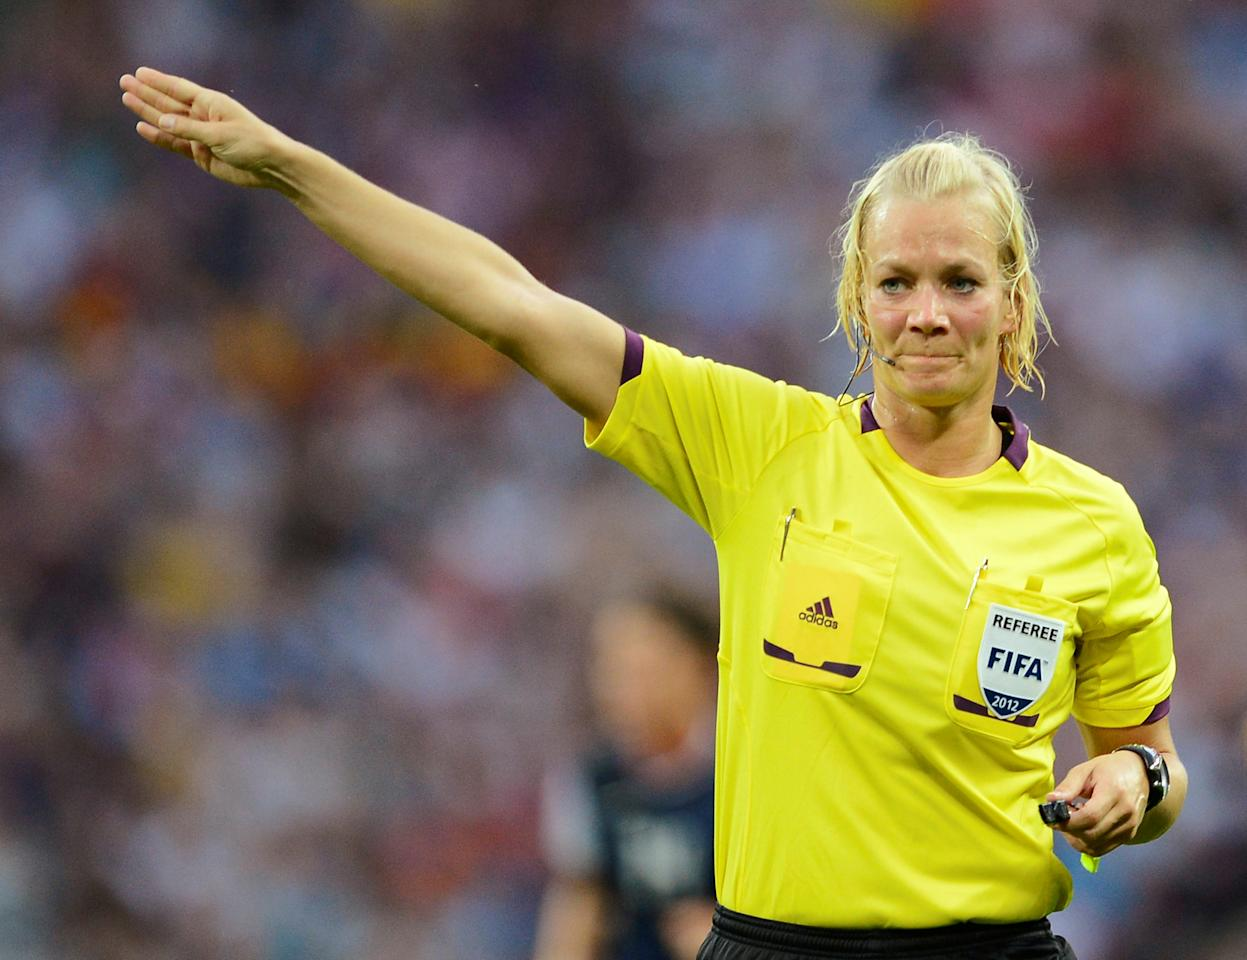 FILE PHOTO: Bibiana Steinhaus of Germany officiates in the women's final soccer match featuring the U.S. against Japan at the London 2012 Olympic Games in London at Wembley Stadium in London, Britain August 9, 2012. REUTERS/Nigel Roddis/File Photo